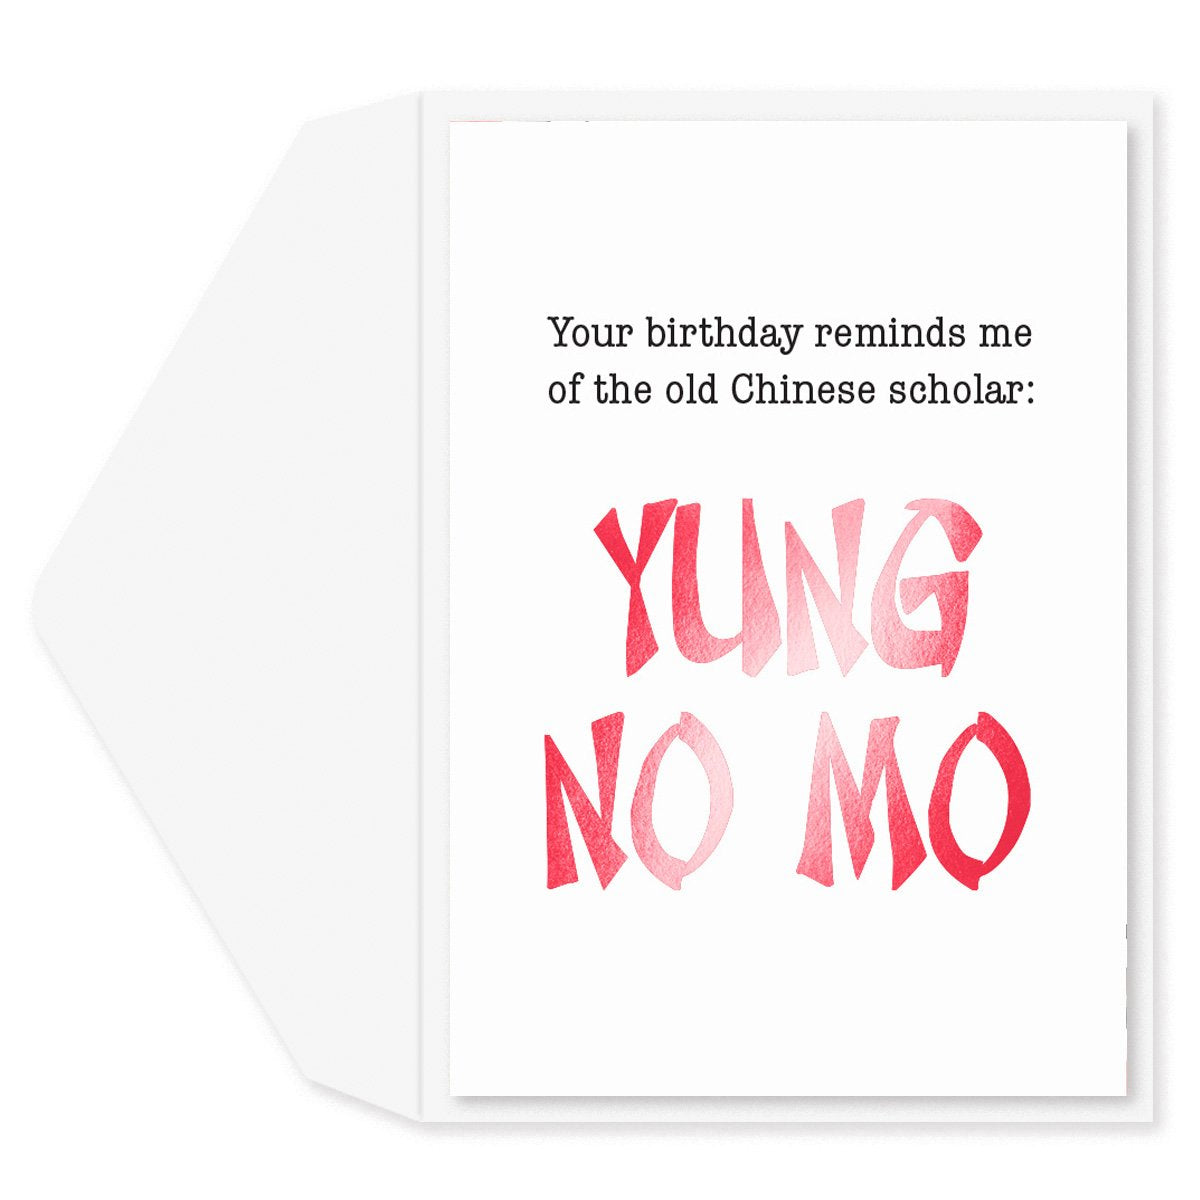 Yung No Mo Birthday Card